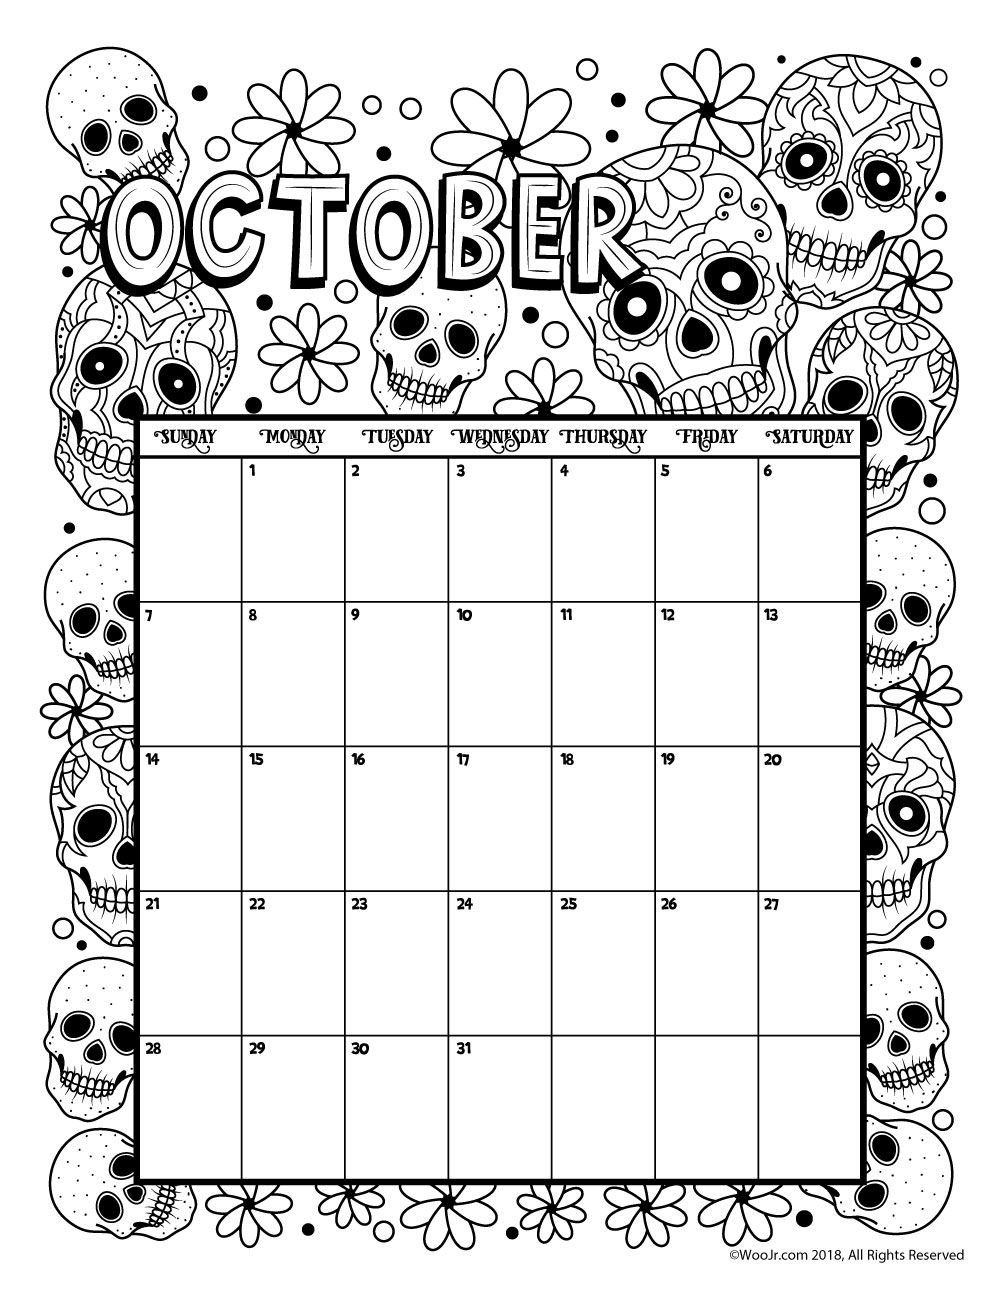 October 2018 Coloring Calendar Page | Сделай Сам | Календарь Для within Free Printable Adult October Calendar 2019 Coloring Sheets